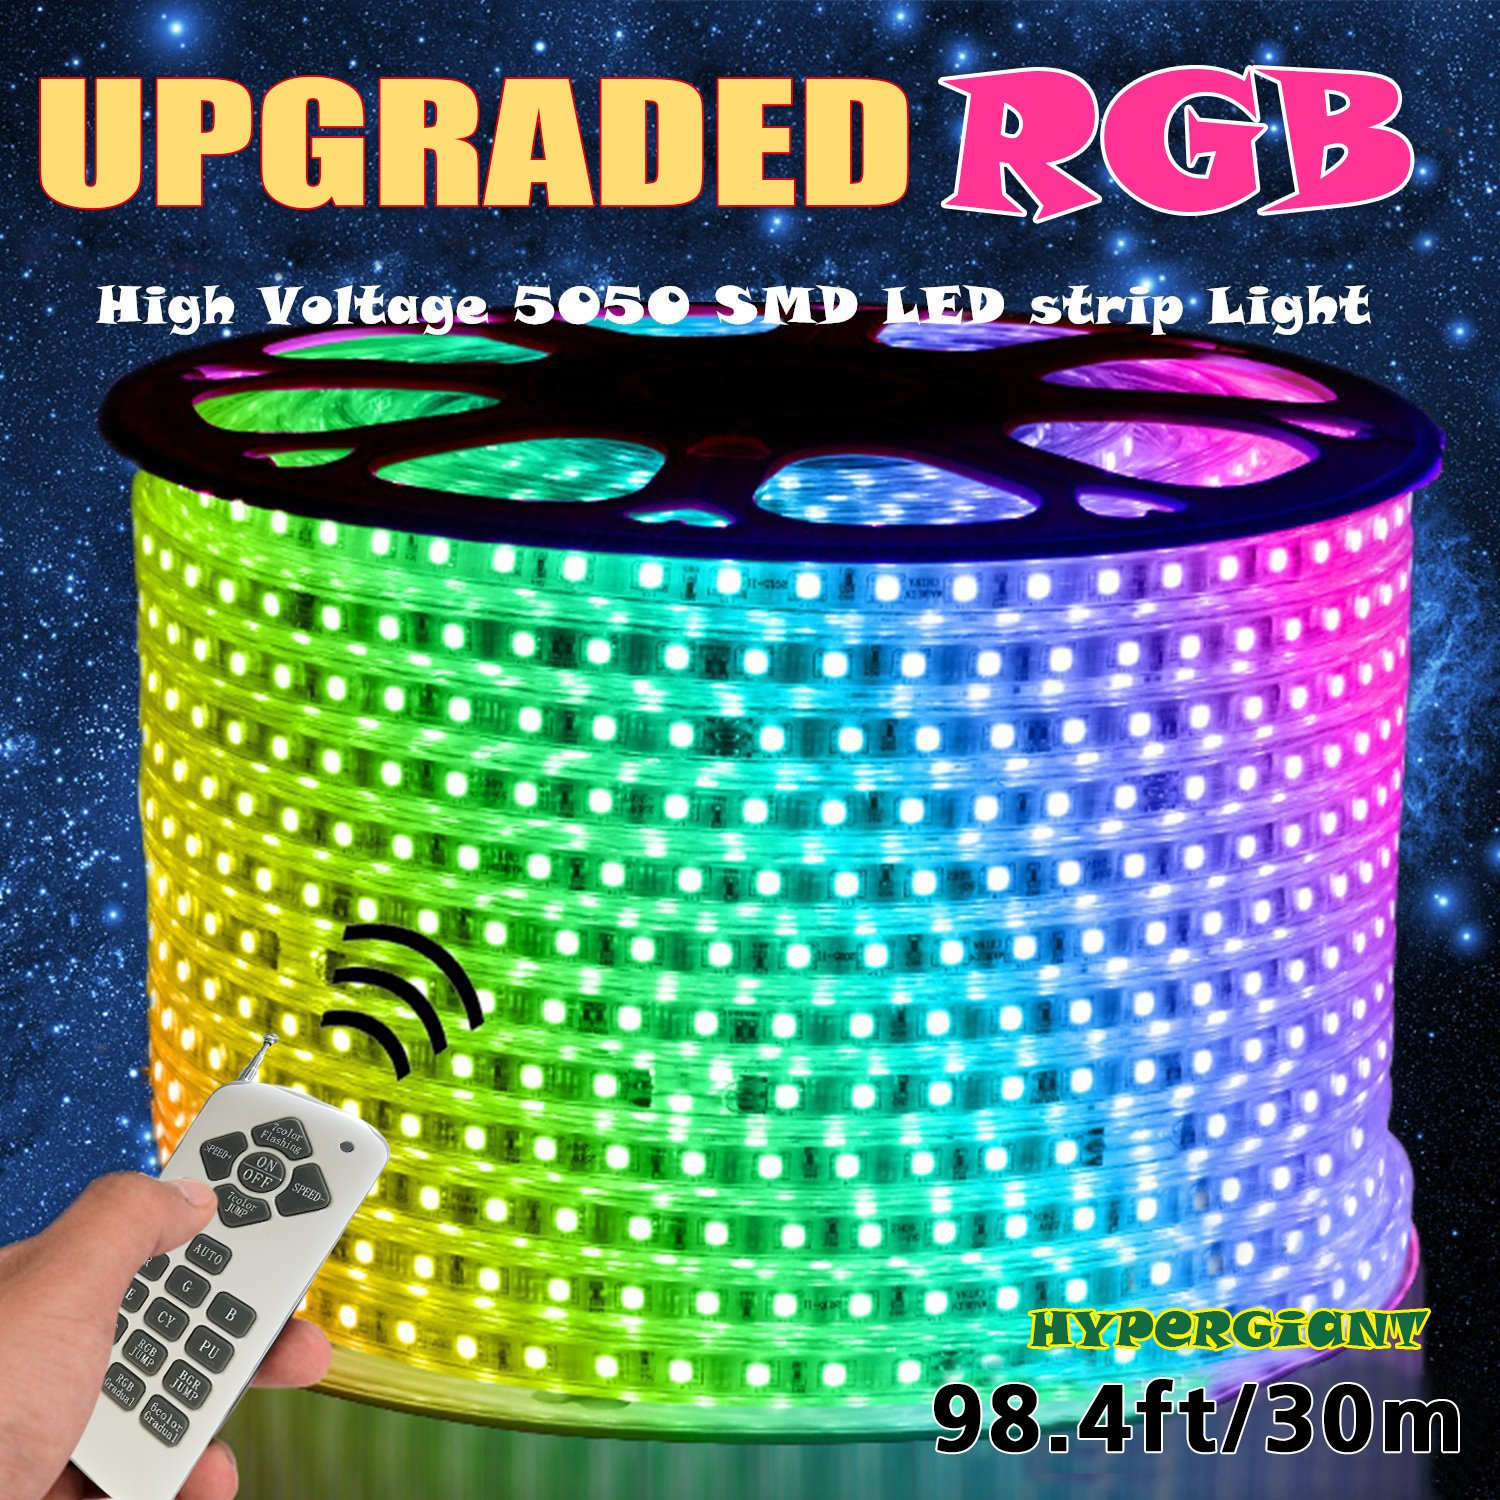 Hypergiant AC 110-120V Flexible RGB LED Strip Lights, 60 LEDs/M, Waterproof, Multi Color Changing 5050 SMD LED Rope Light + Remote Controller for Party Christmas Decoration (98.4ft/30m)